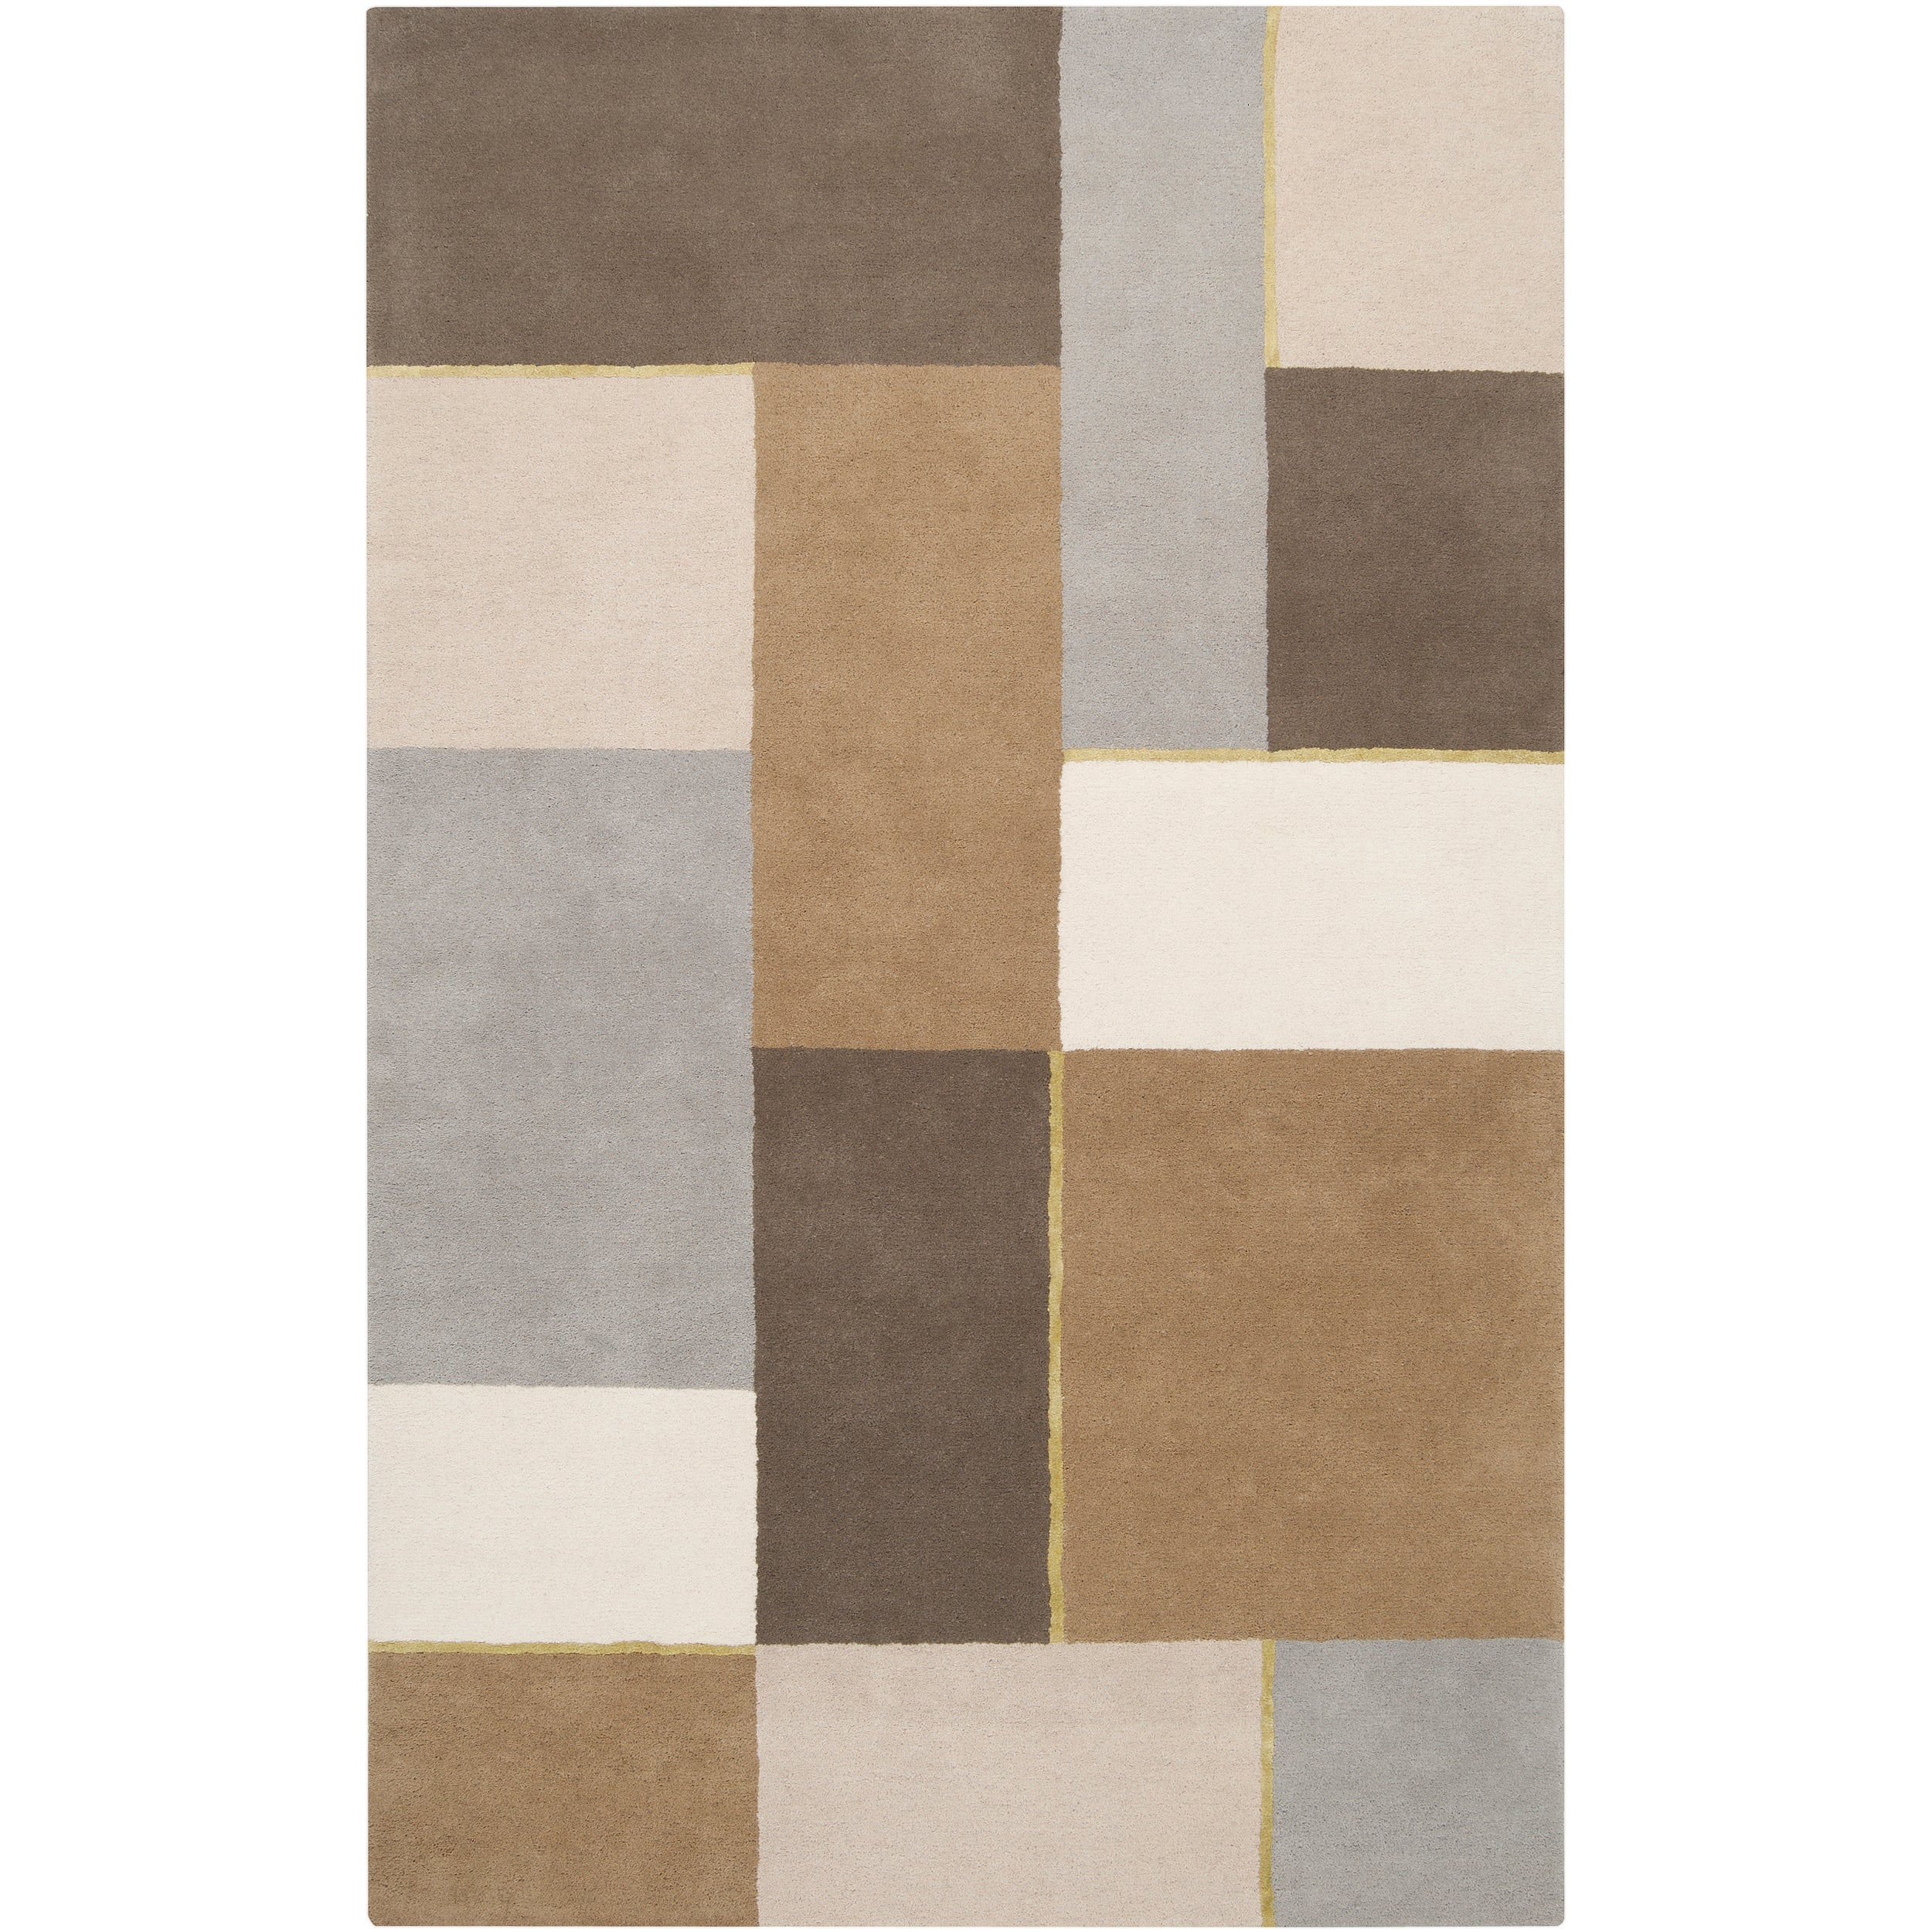 Harlequin Hand-tufted Multi Opaque Geometric Pattern Wool Rug (8' x 10')